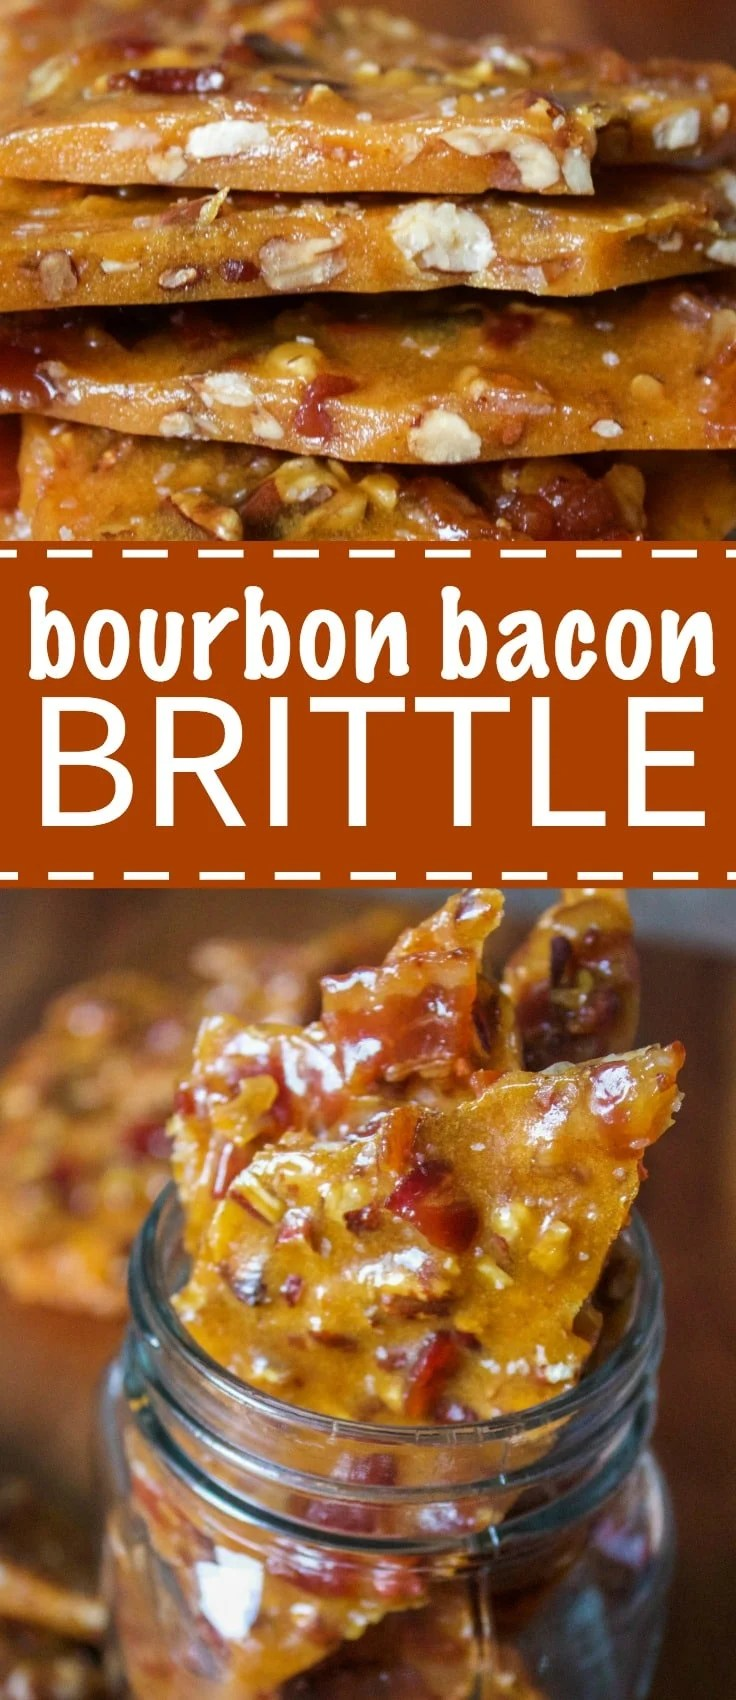 This bourbon bacon brittle is made with candied bacon, toasted pecans and bourbon. It's the crunchiest, most delicious brittle you will ever have.